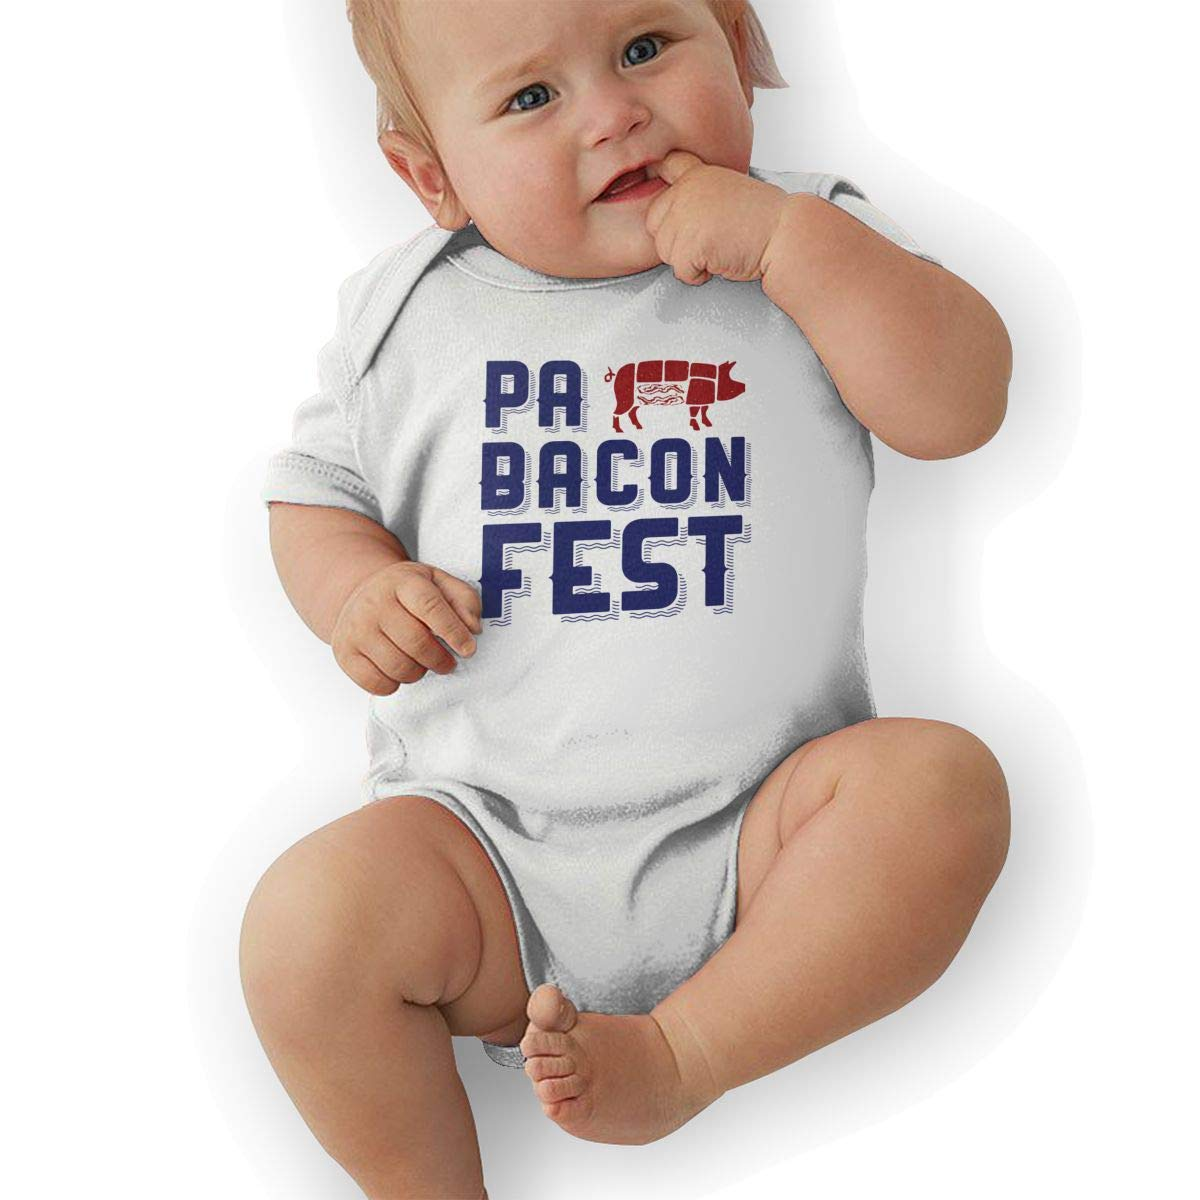 Infant Baby Girls Bodysuit Short-Sleeve Onesie PA Bacon Fest Print Outfit Spring Pajamas